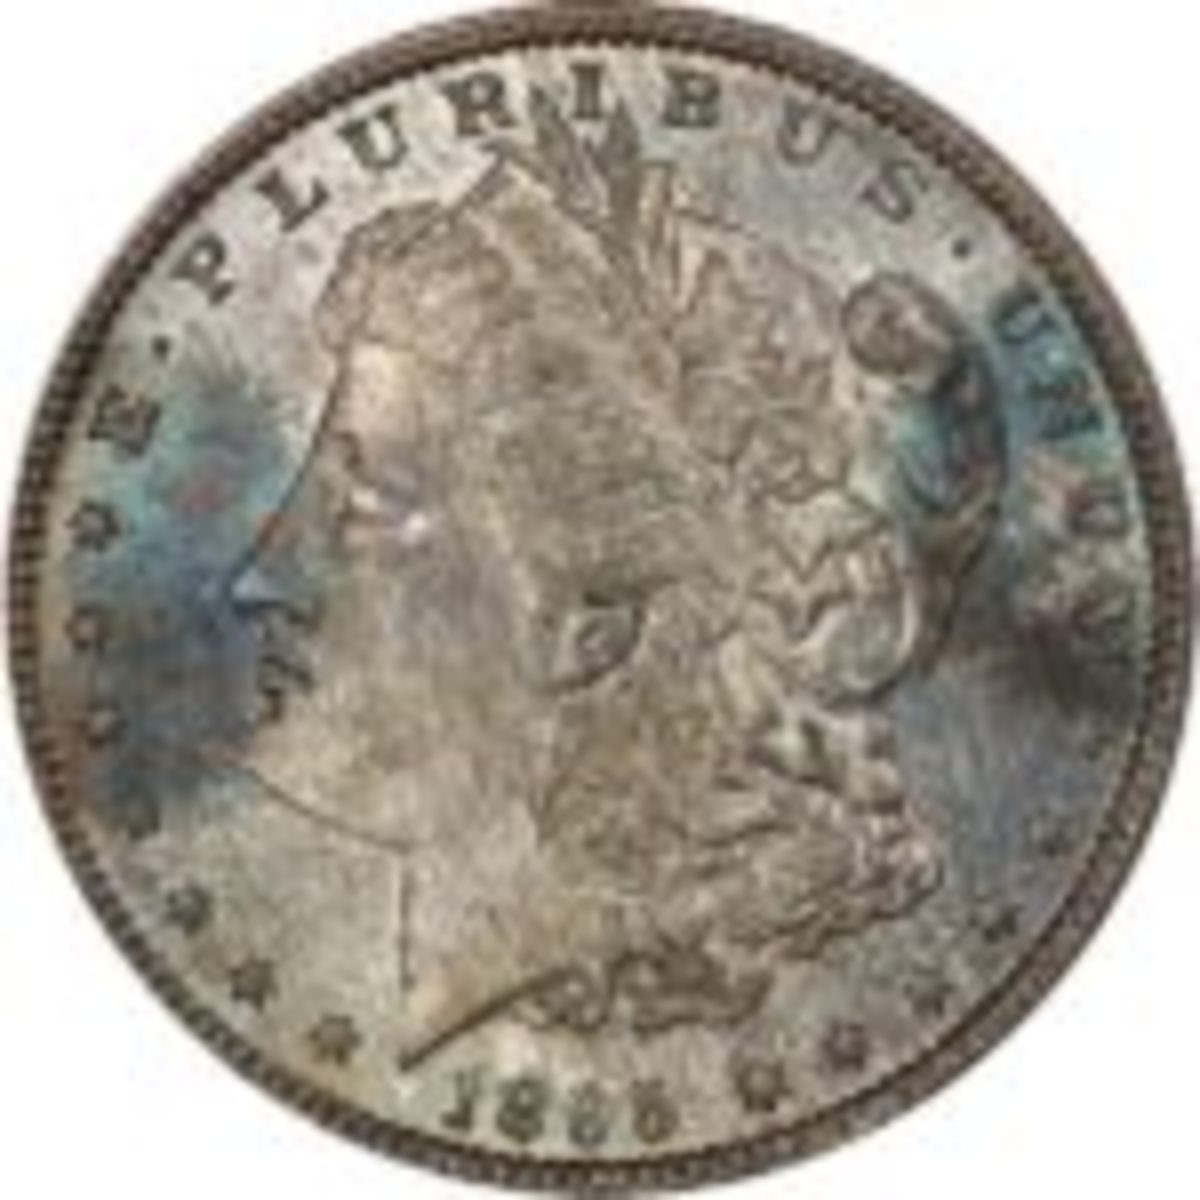 1895 Morgan Dollar minted in New Orleans, Louisiana